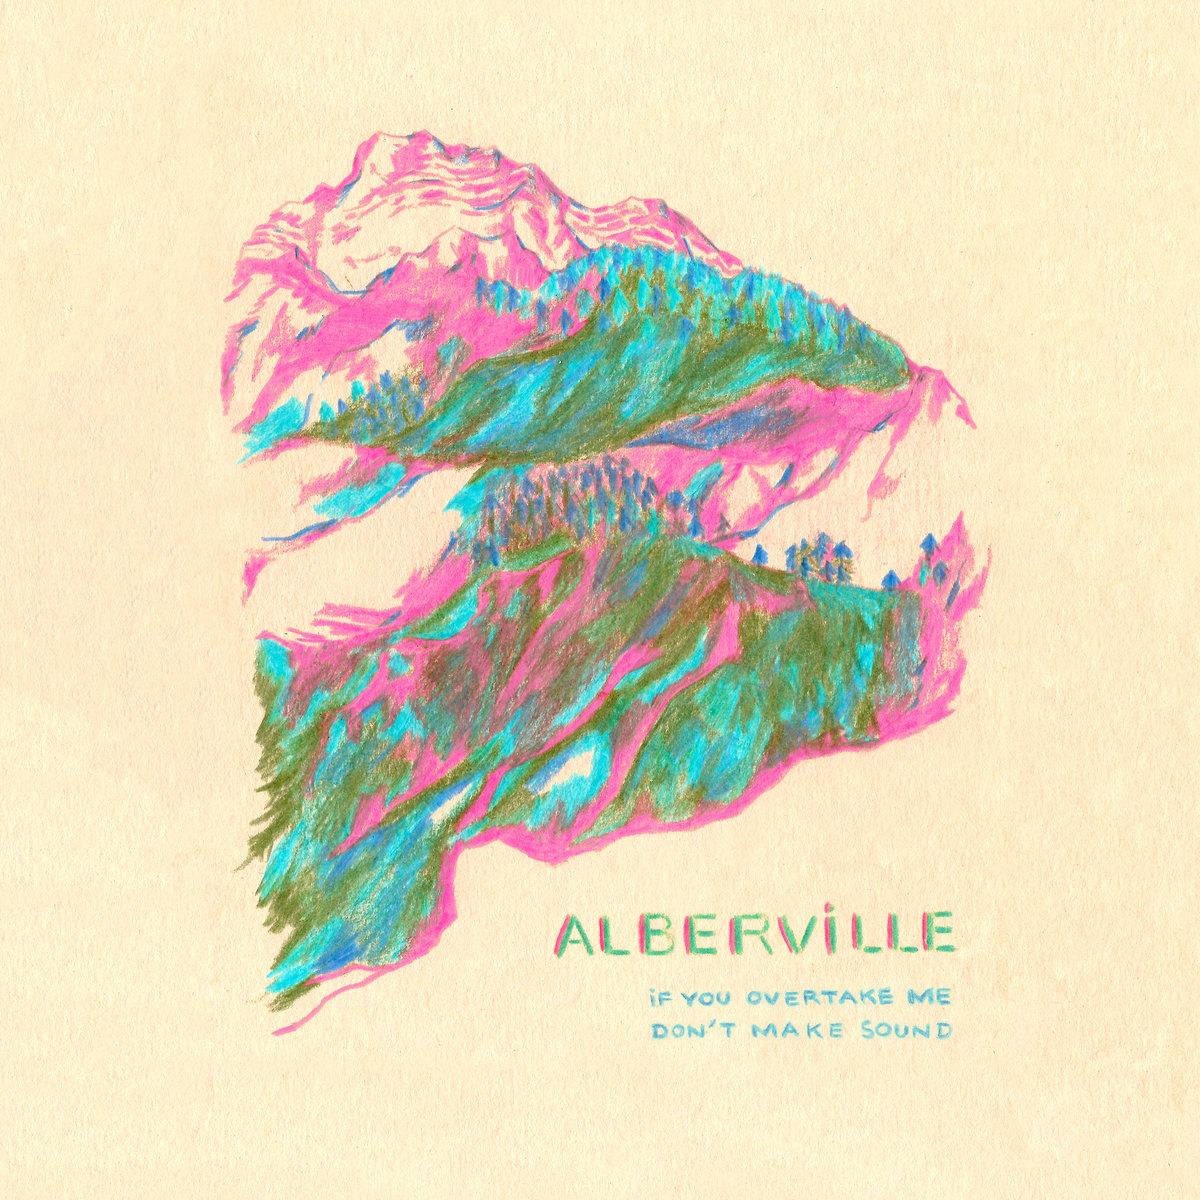 Alberville – If you overtake me don't make sound